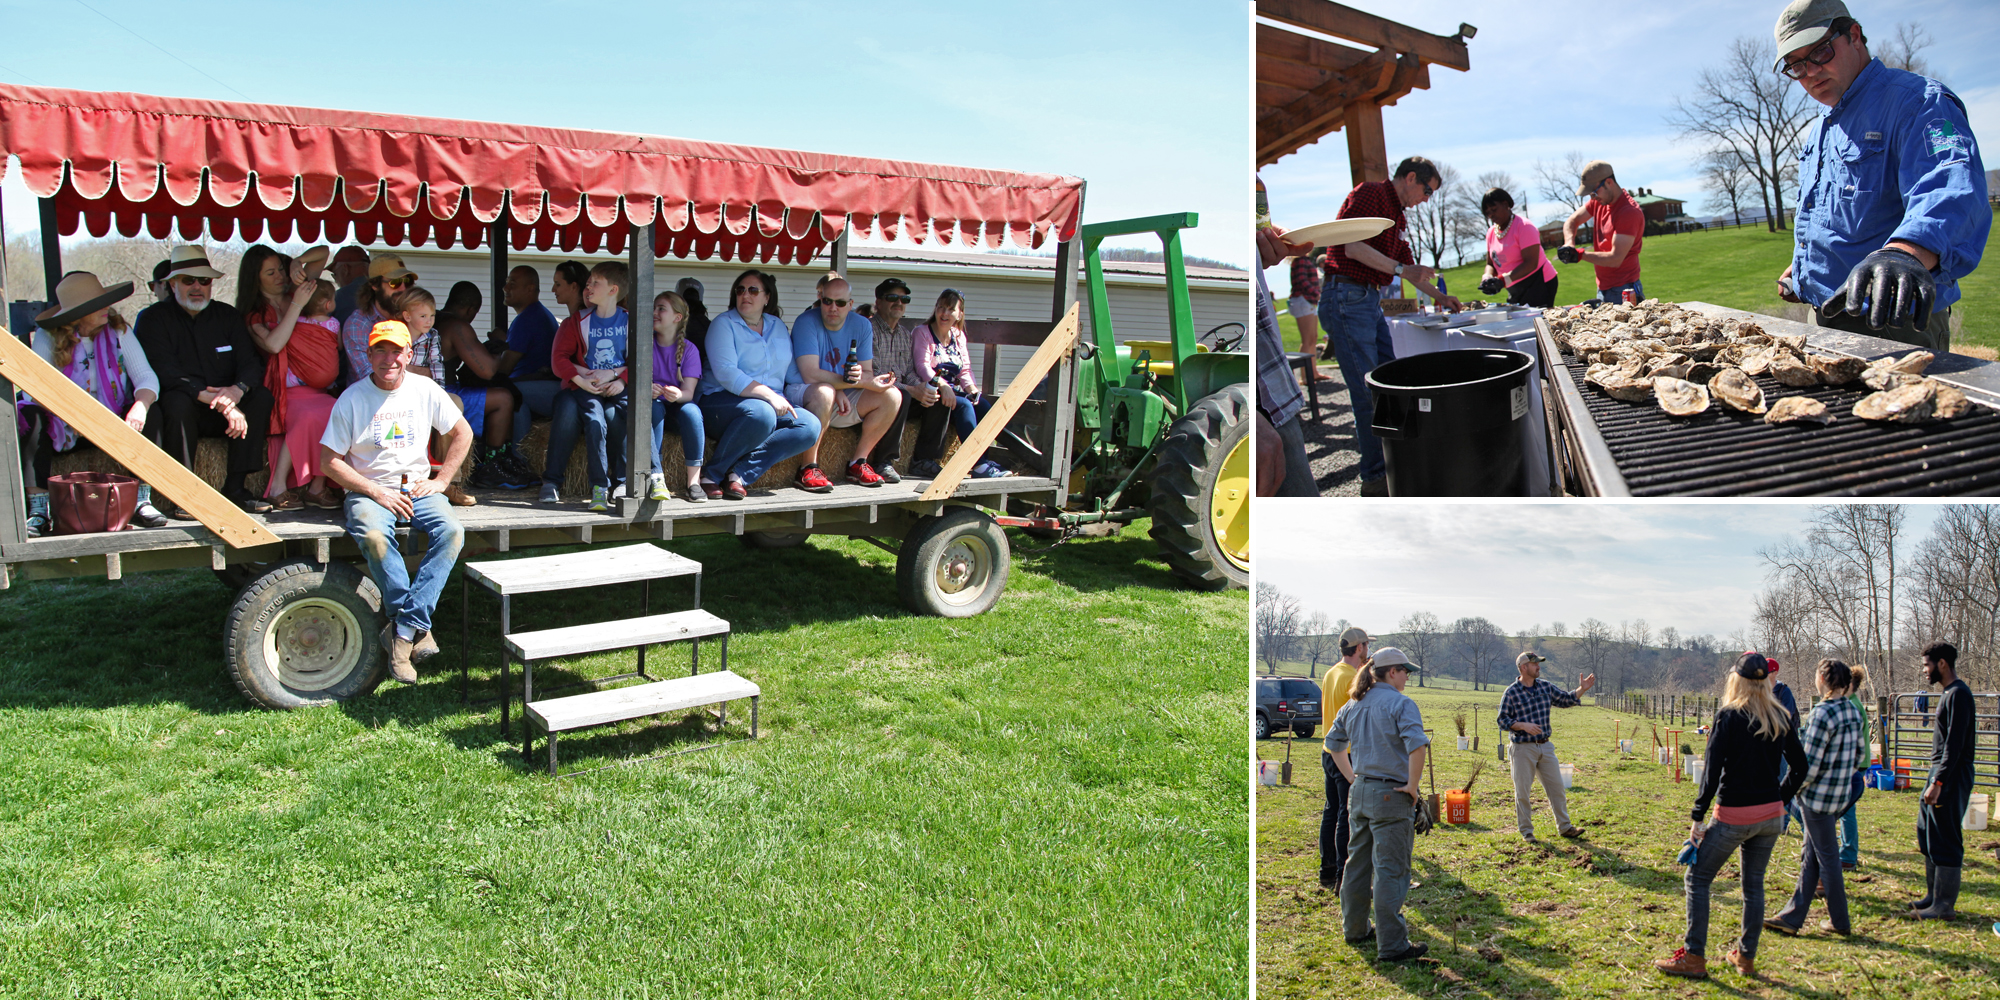 People on hay ride, oysters on grill, people on field listening to talk